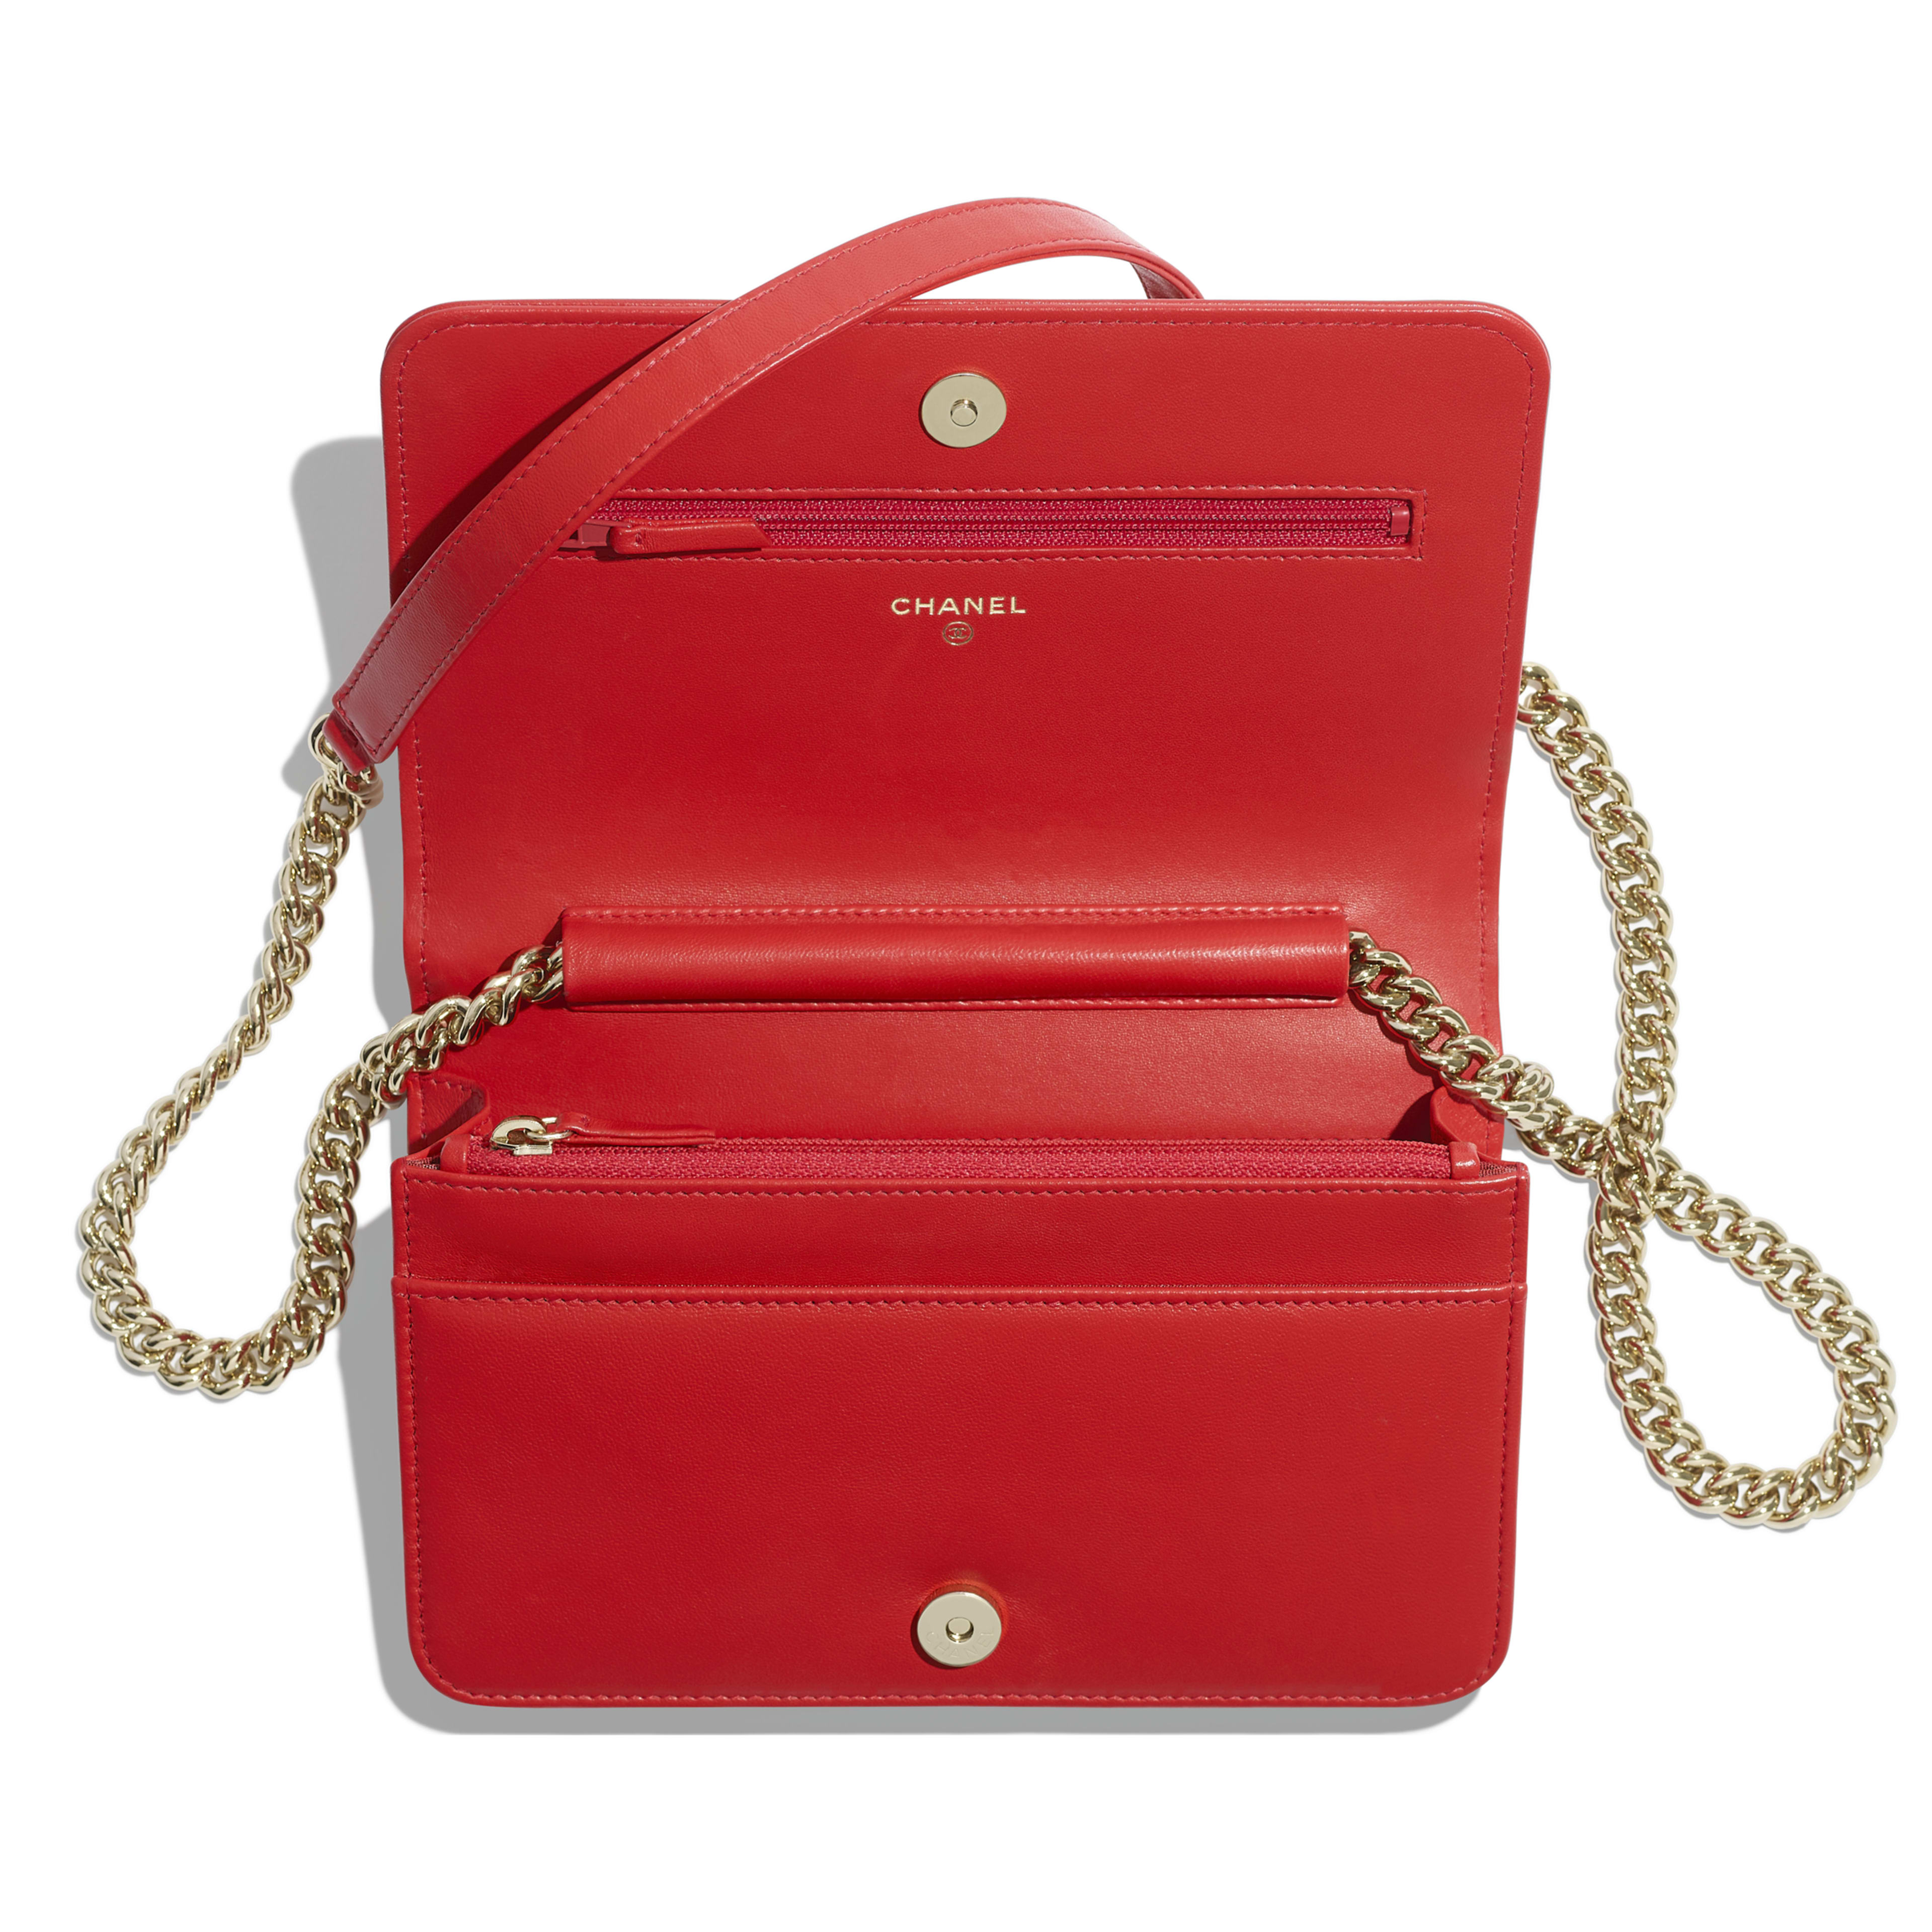 5d617adccdbd BOY CHANEL Wallet on Chain - Red - Lambskin   Gold-Tone Metal - Other ...